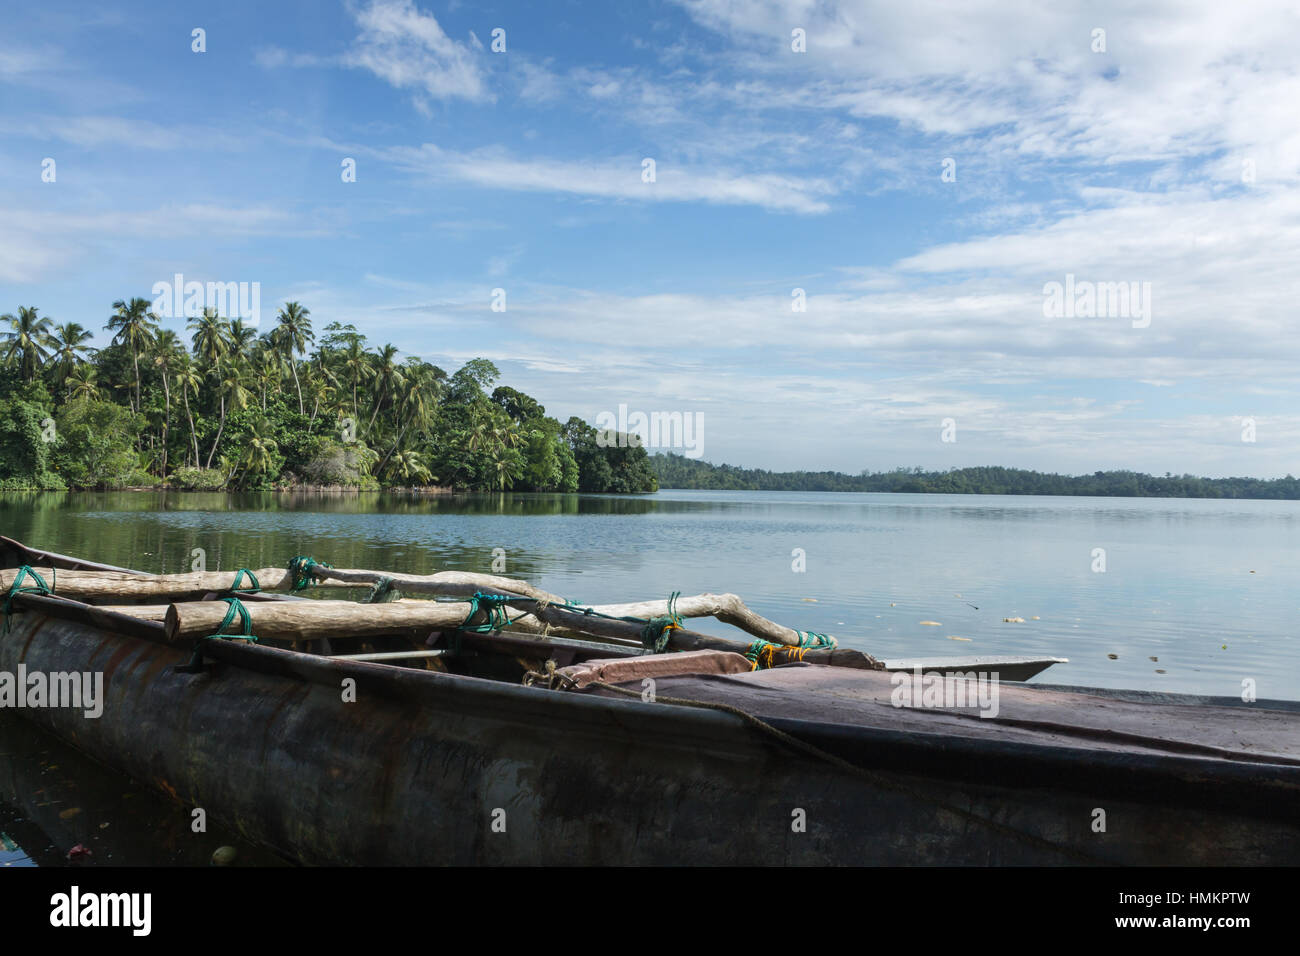 fishing boats on the lake in the jungles of Sri Lanka. - Stock Image